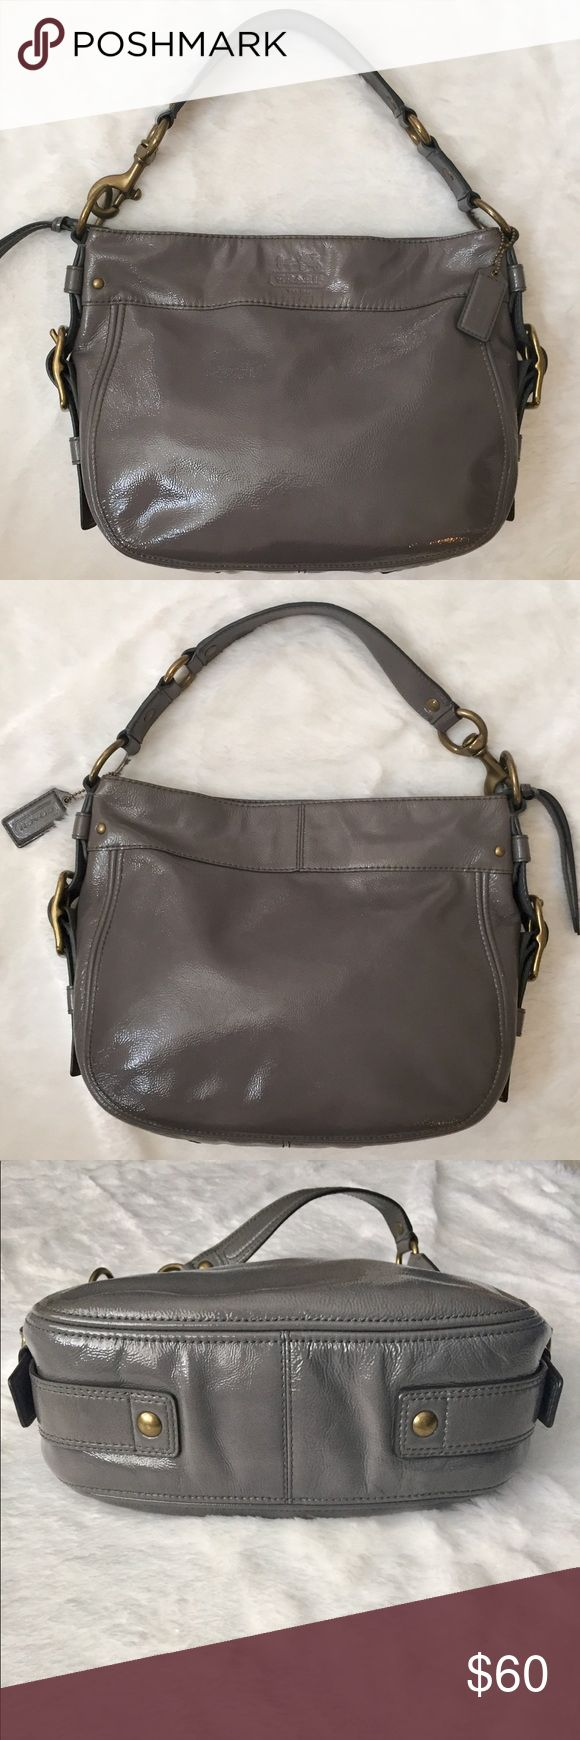 """EUC Coach Zoe Patent Hobo Shoulder Bag Coach Zoe Patent Hobo Handbag in Petrol Gray with gold hardware. Inside: 1 zip pocket and 2 open pockets. Style# 12735. Approx: 13""""L x 10""""H x 4""""W - strap drop: 7.5"""" - very good condition. Reasonable offers welcome. Coach Bags Shoulder Bags"""